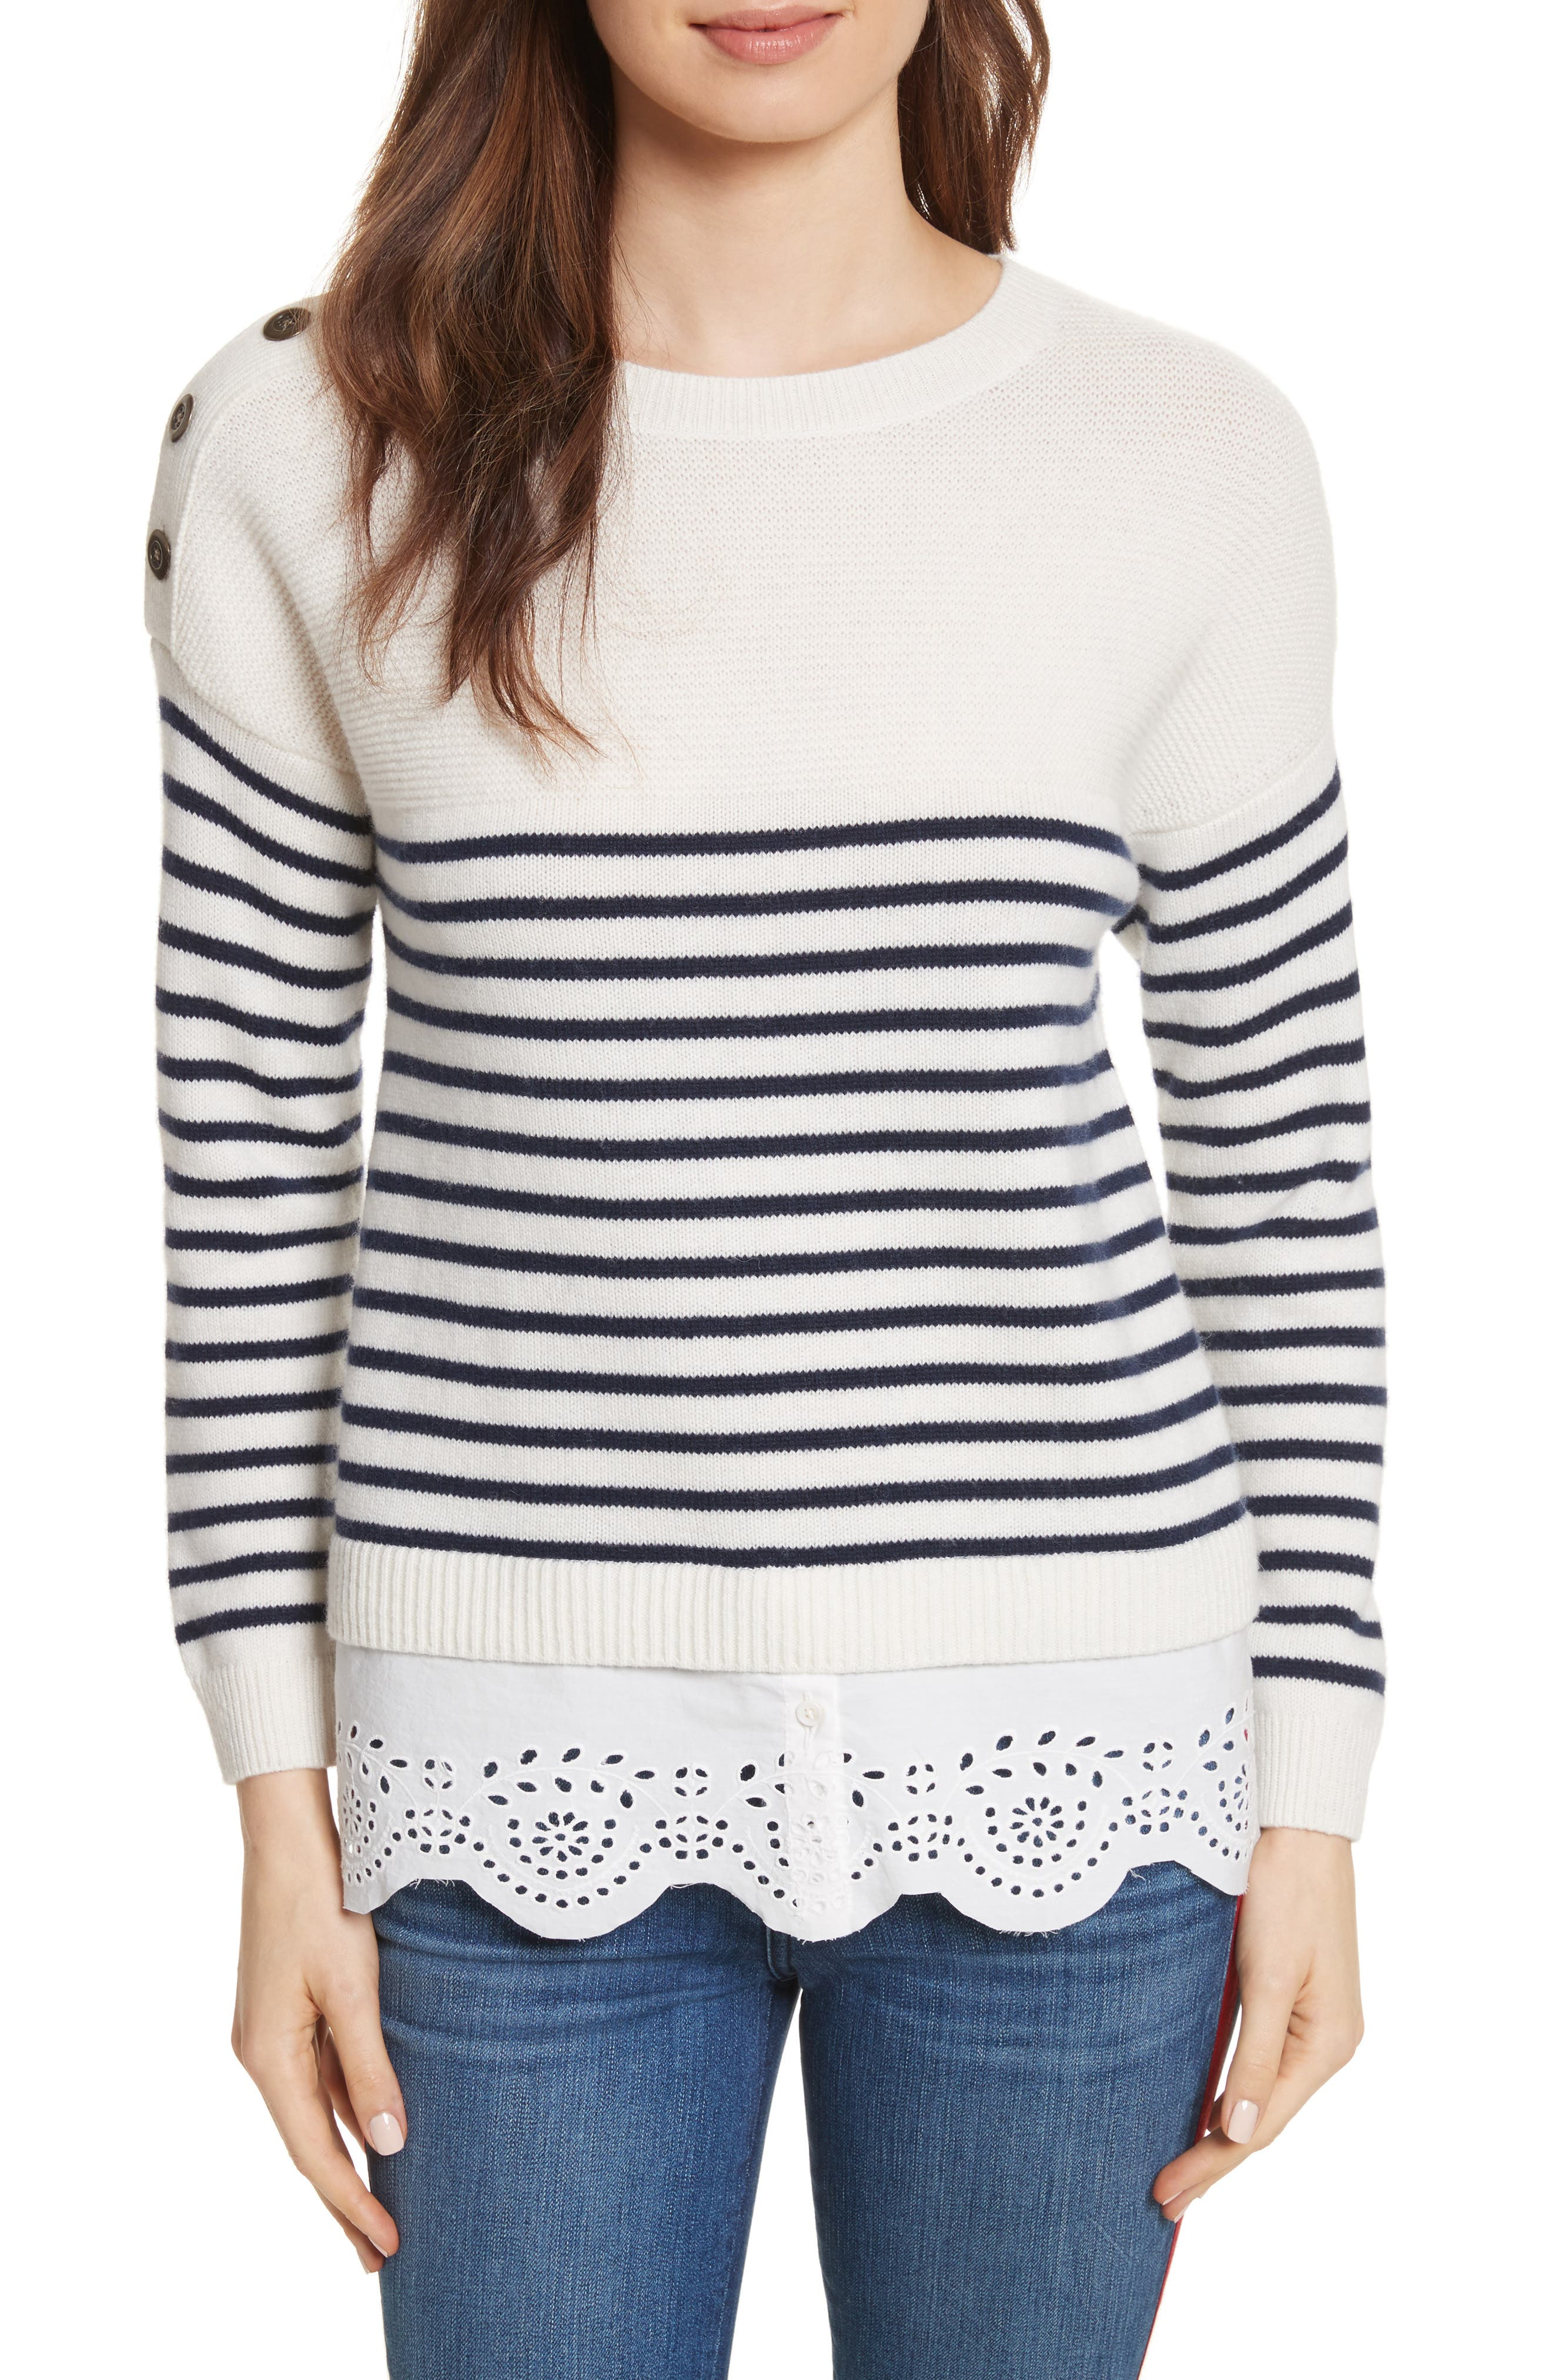 Aefre Woven Trim Wool & Cashmere Sweater,                         Main,                         color, 029